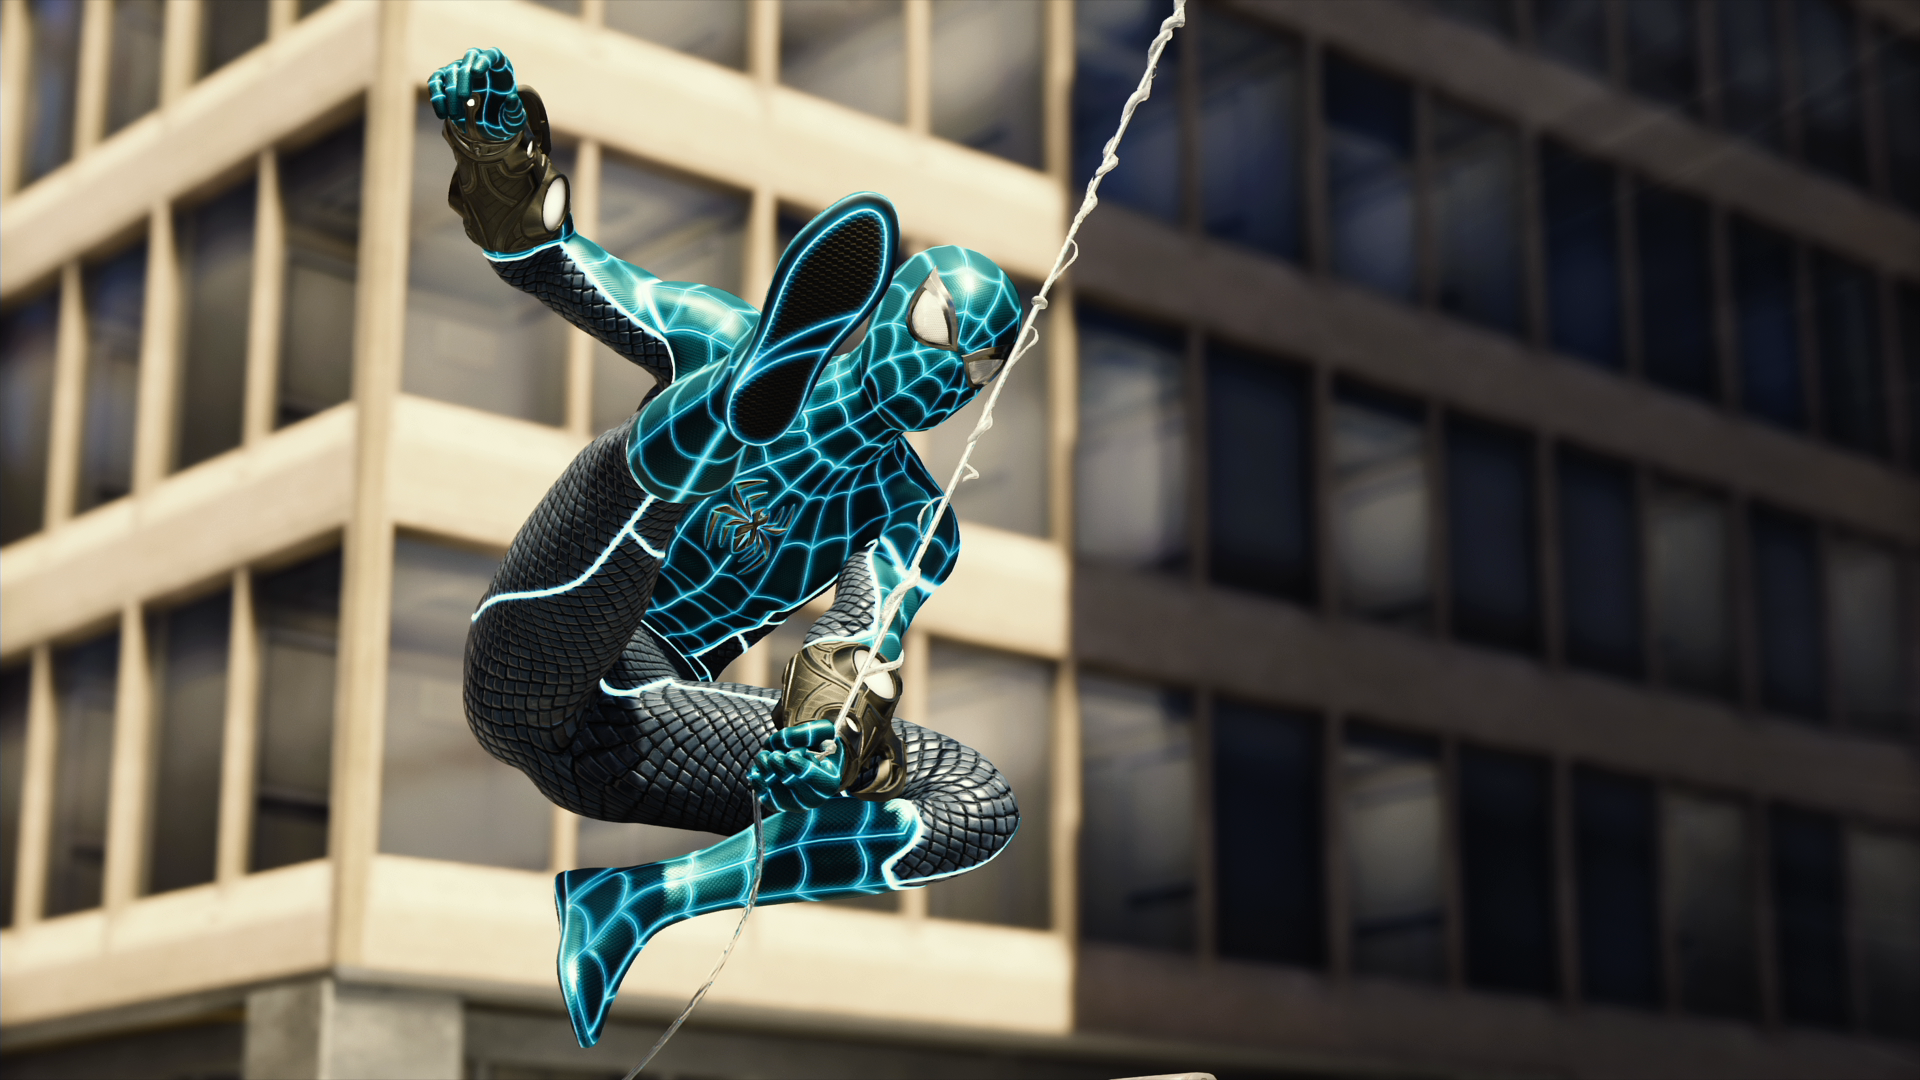 Spider-Man' PS4 Best Suit Powers: Focus on Getting These 6